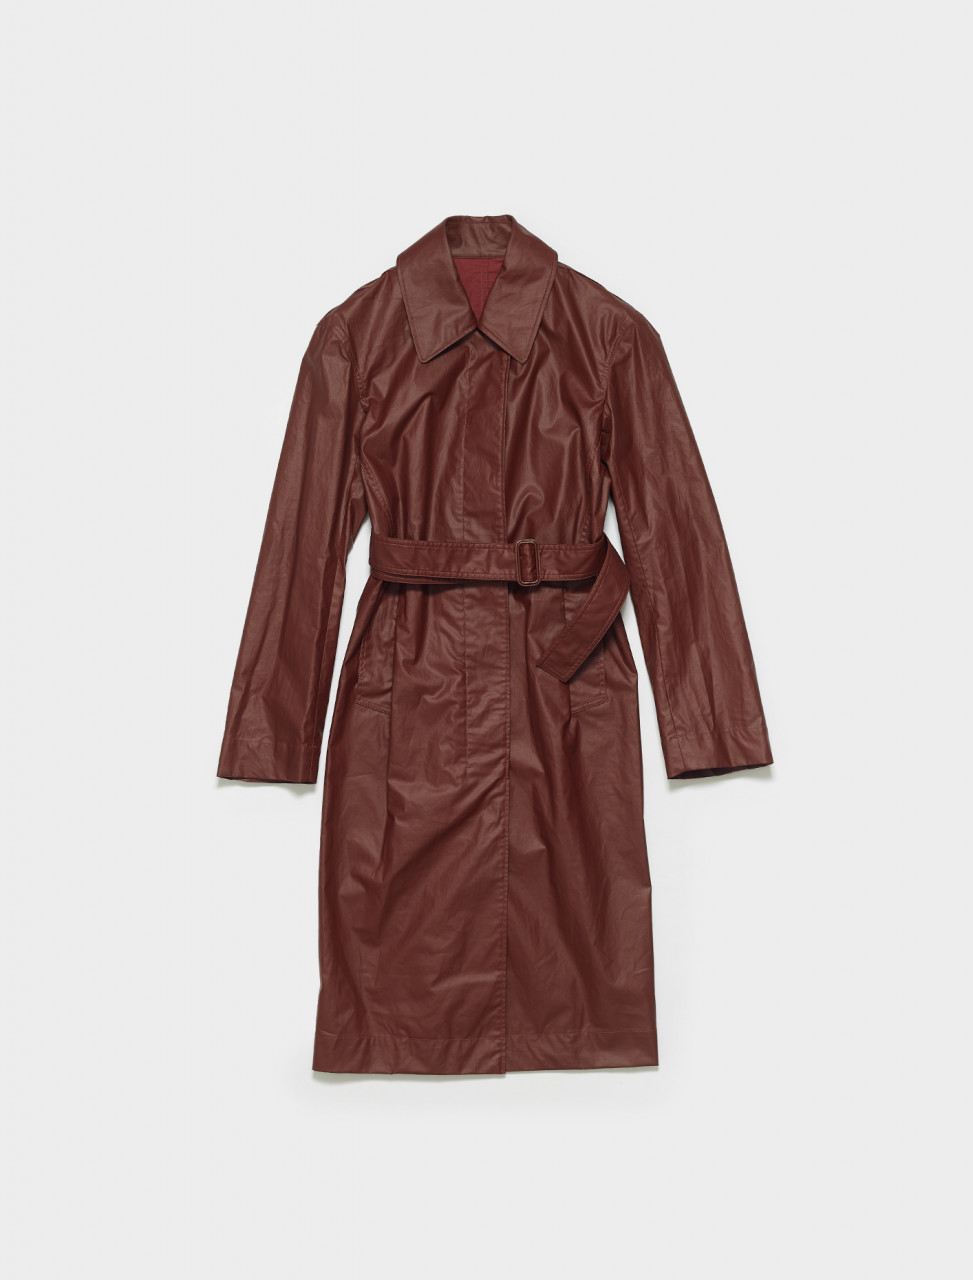 W-211-CO264-LF095-360 LEMAIRE FITTED TRENCH IN RED